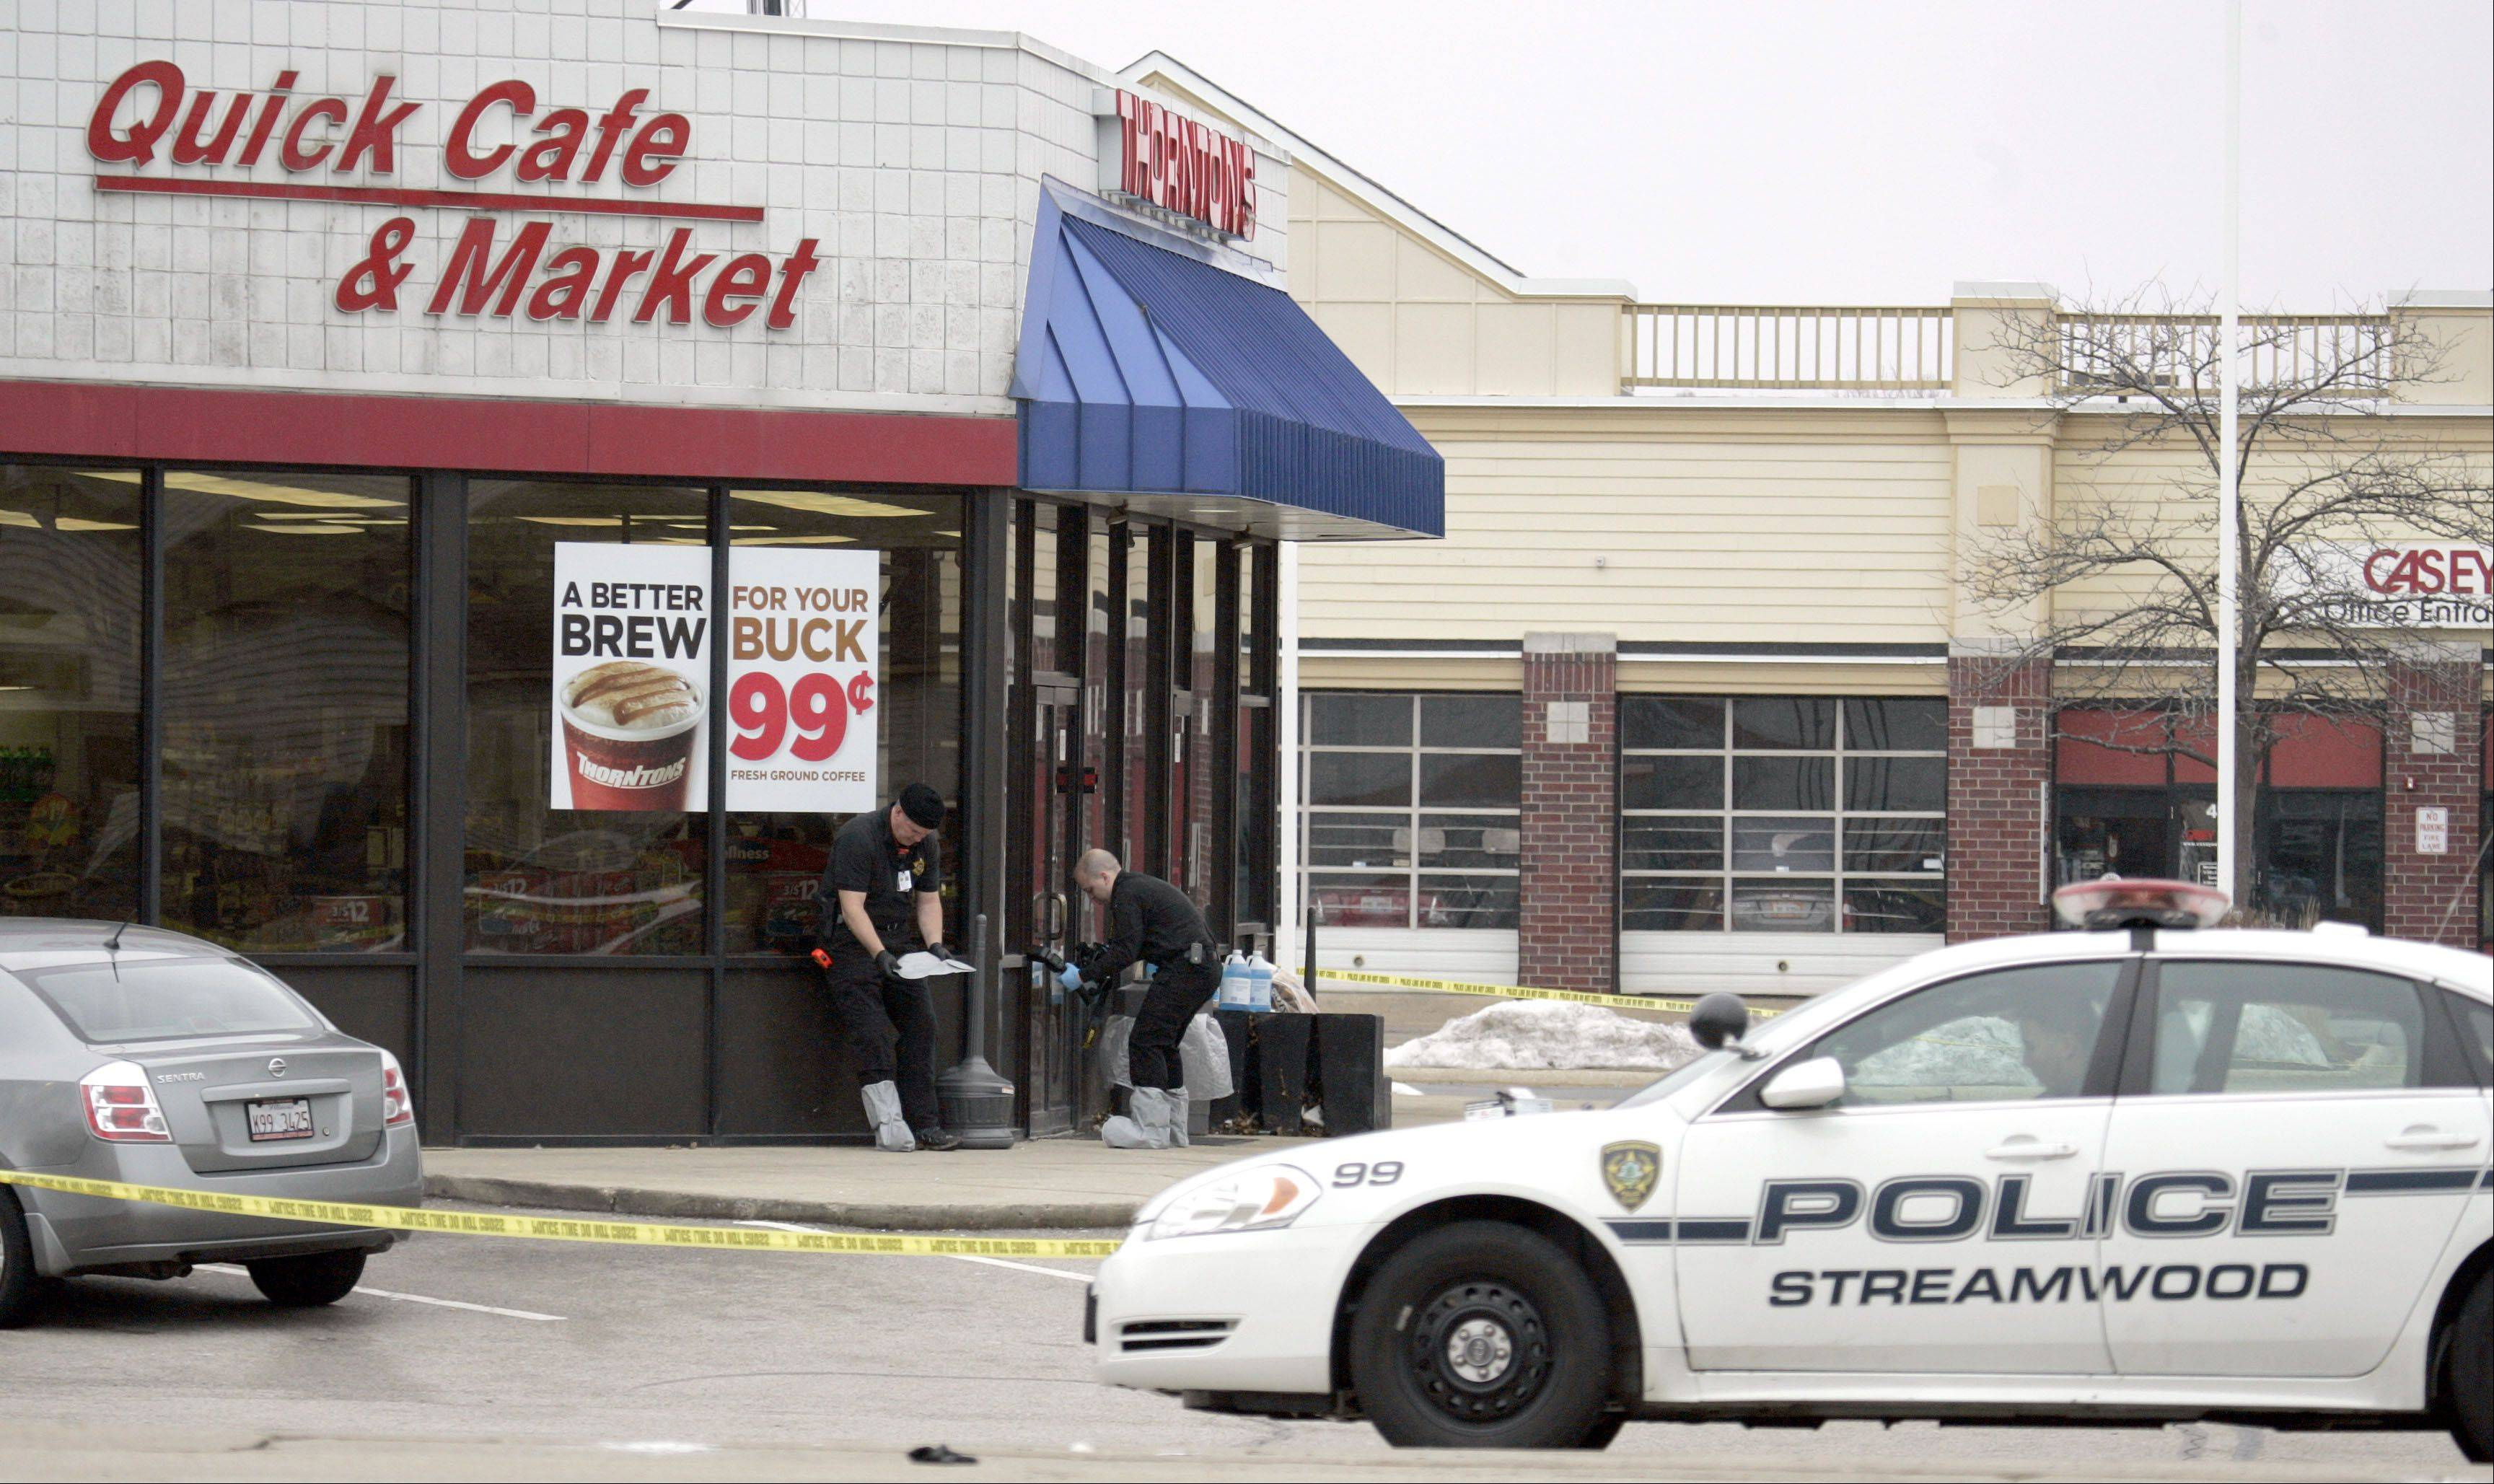 Two unidentified Streamwood police officers prepare to work the scene where a gas station clerk was stabbed and killed early Saturday morning in Streamwood, police said.